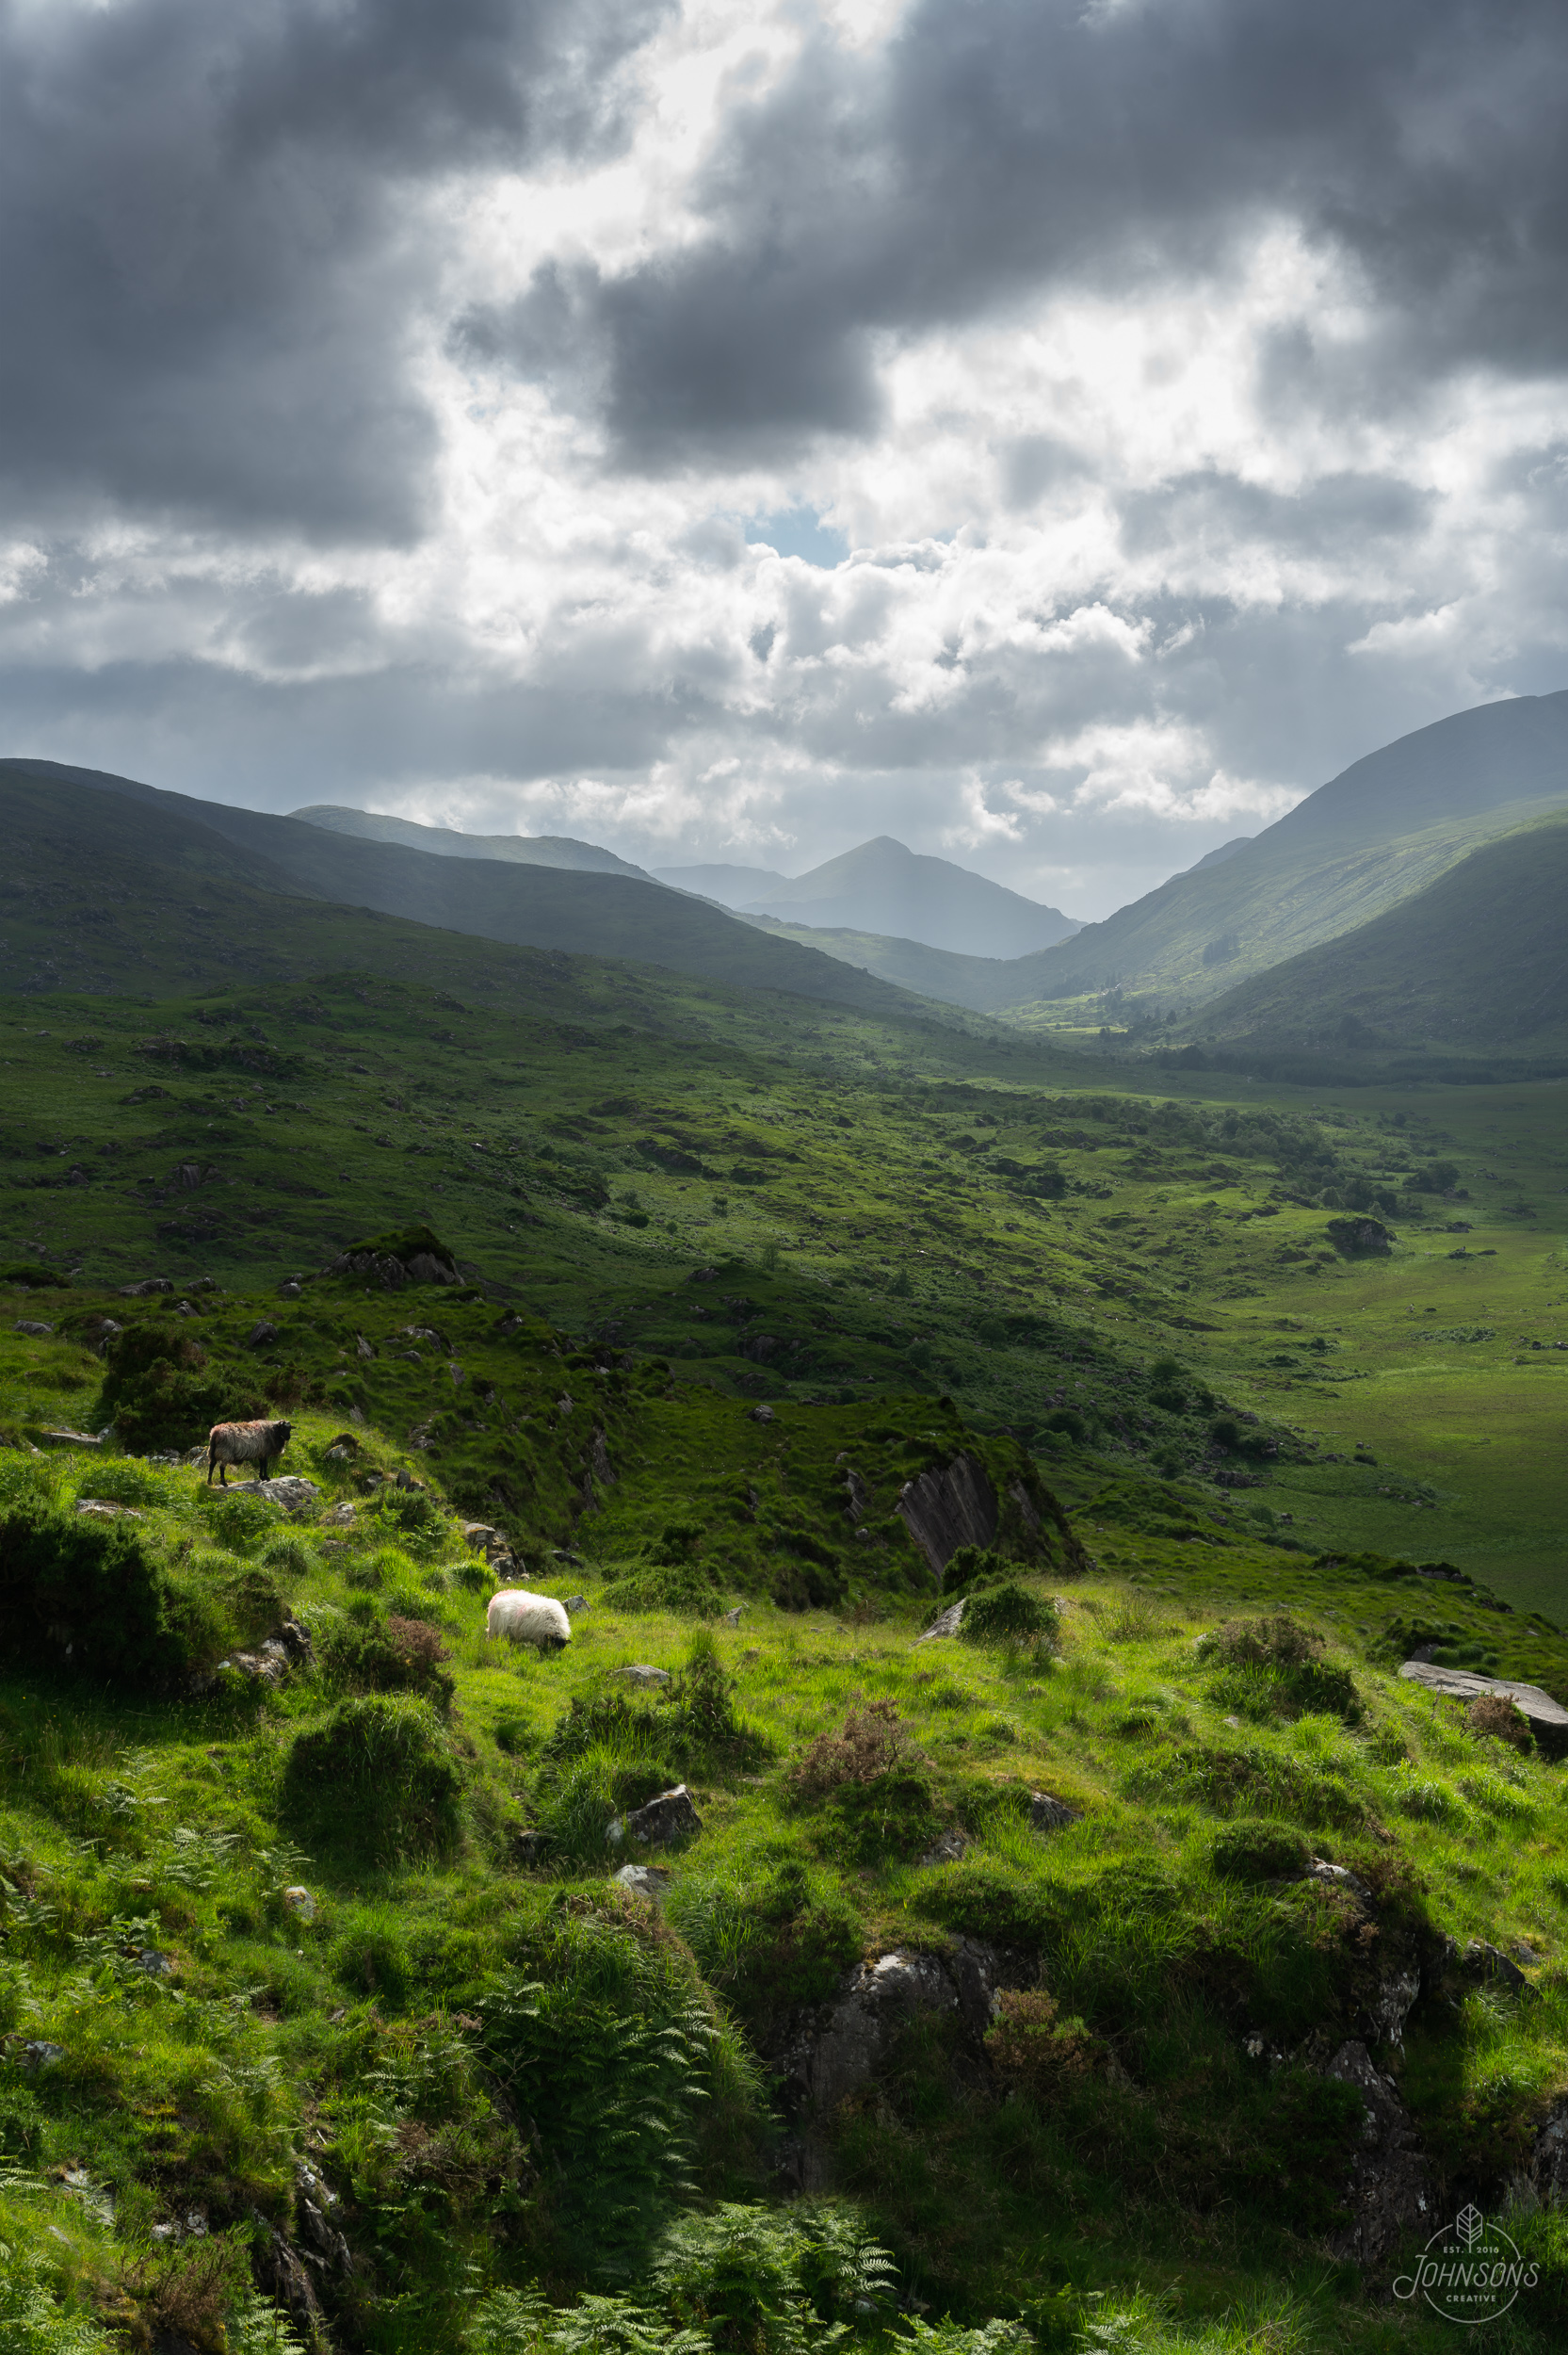 Sony a7rii | 55mm 1.8 | f11 | 1/80 sec | ISO 50 | Lee Circular Polarizing Filter    The Southern side of the park was full of crazy vistas and a few sheep on the road.    This image is available for print,  click here to order .